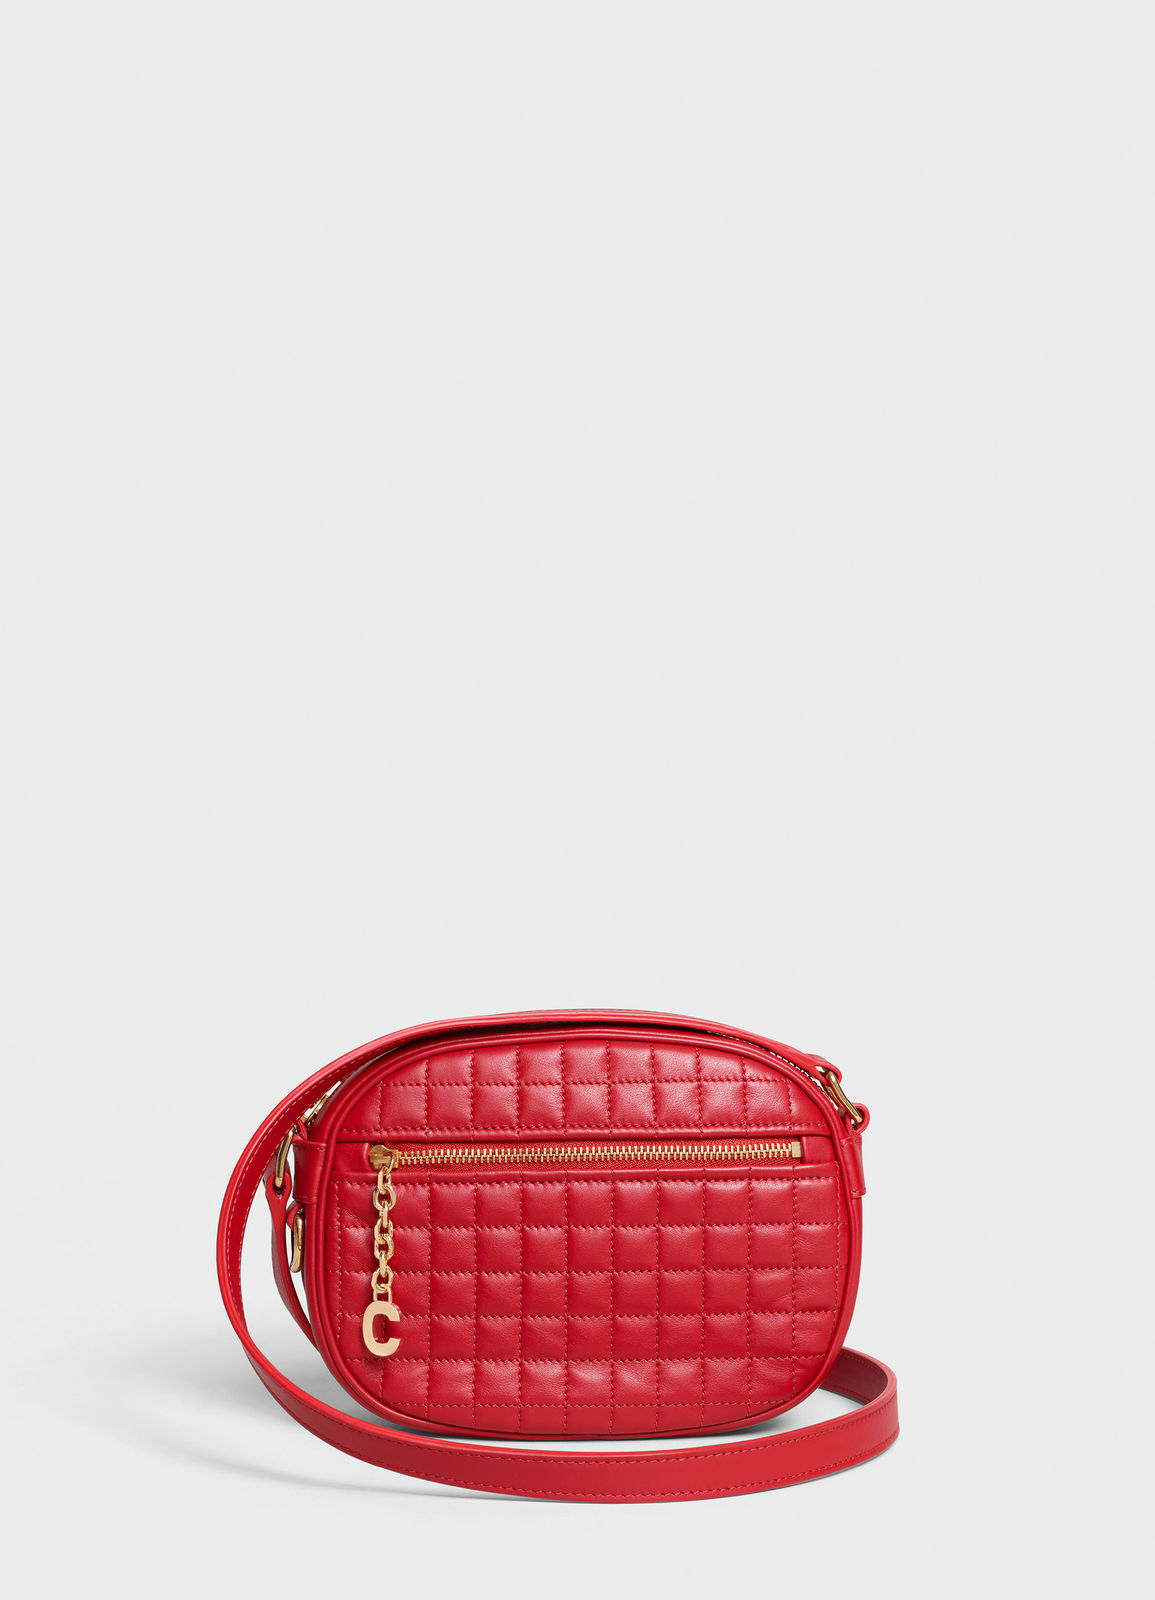 CELINE CROSS BODY SMALL C CHARM BAG IN QUILTED CALFSKIN 188363 RED